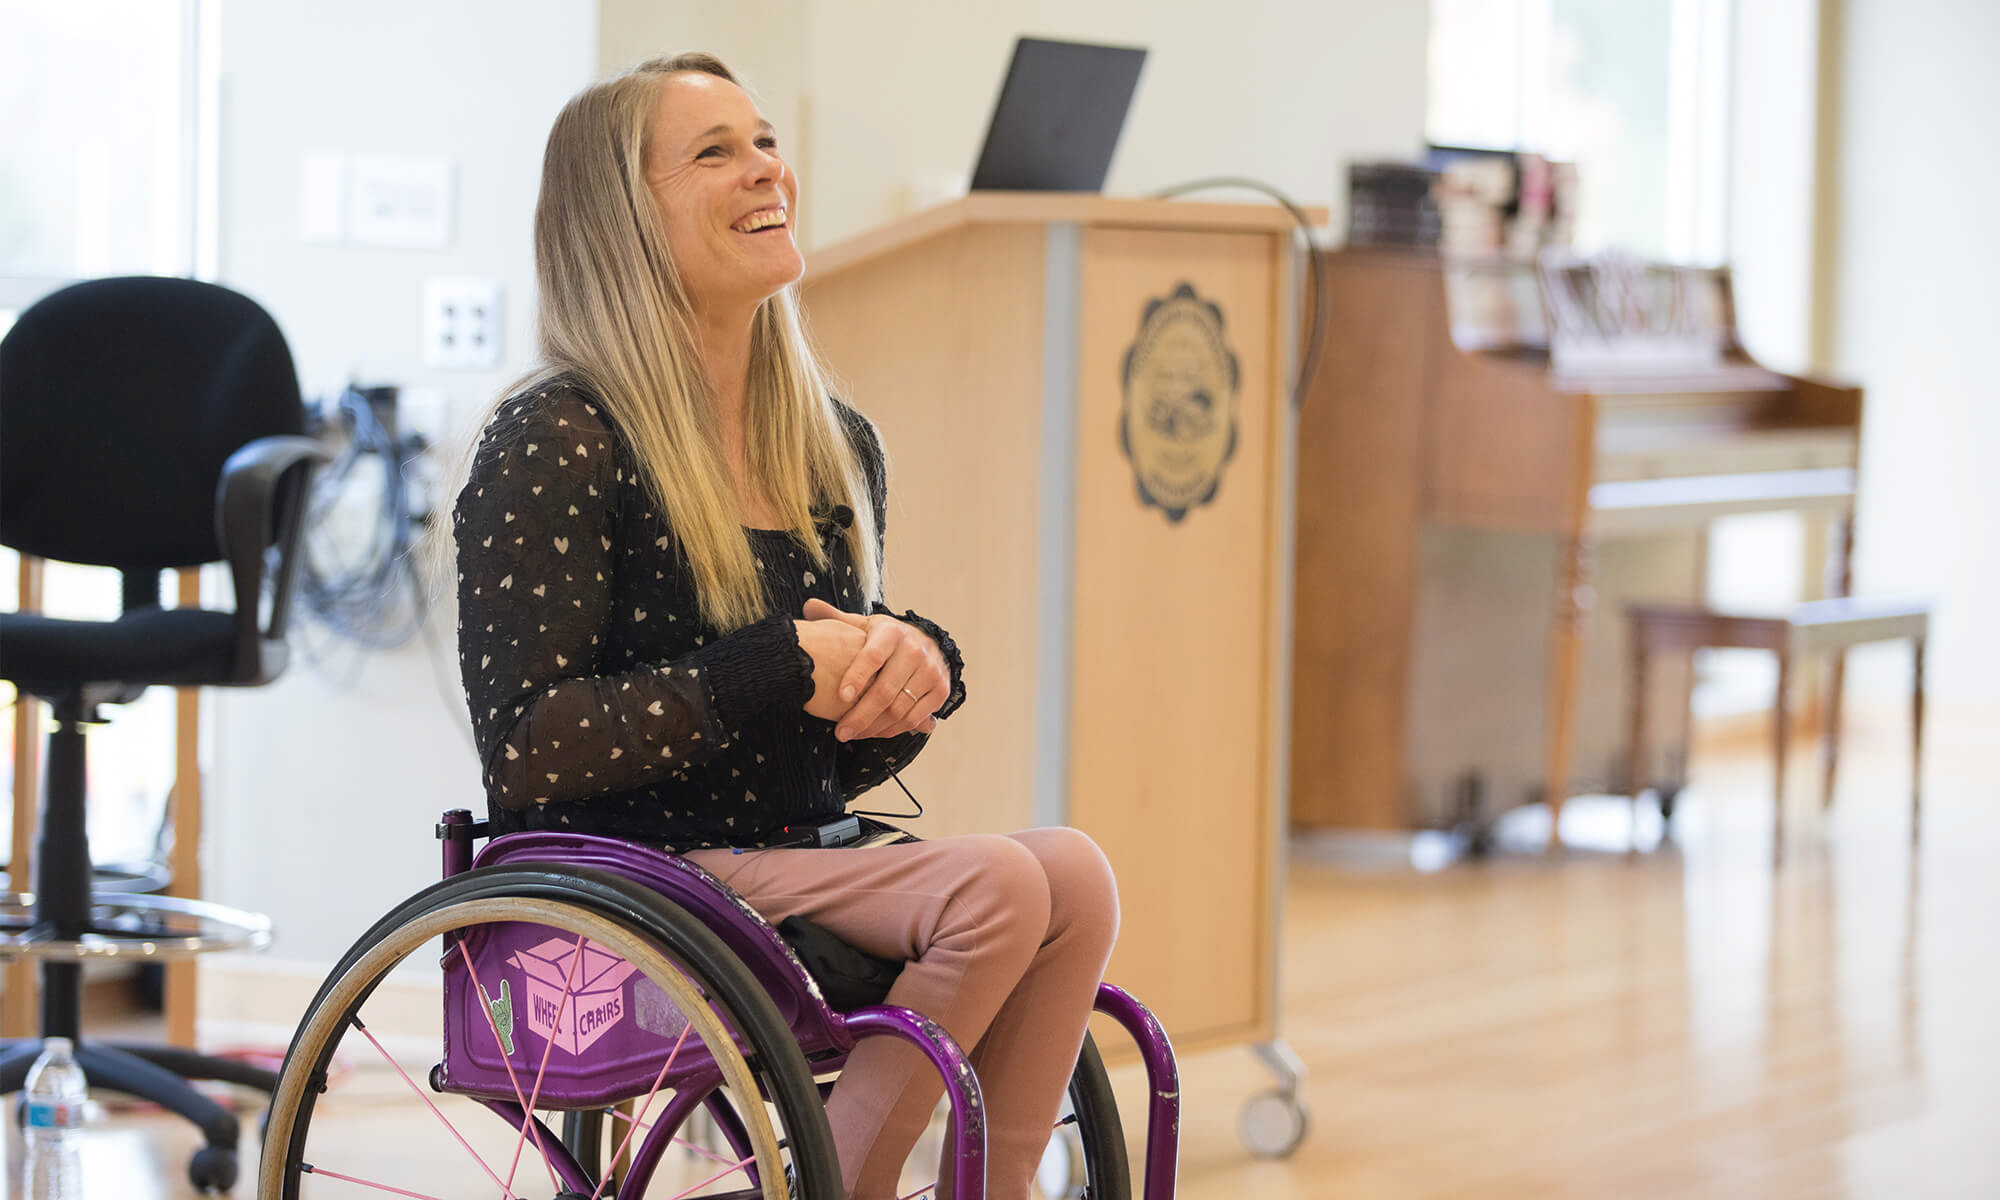 Paralympian Kaitlyn Verfeuth speaks during Concordia University's All Abilities Awareness Day.